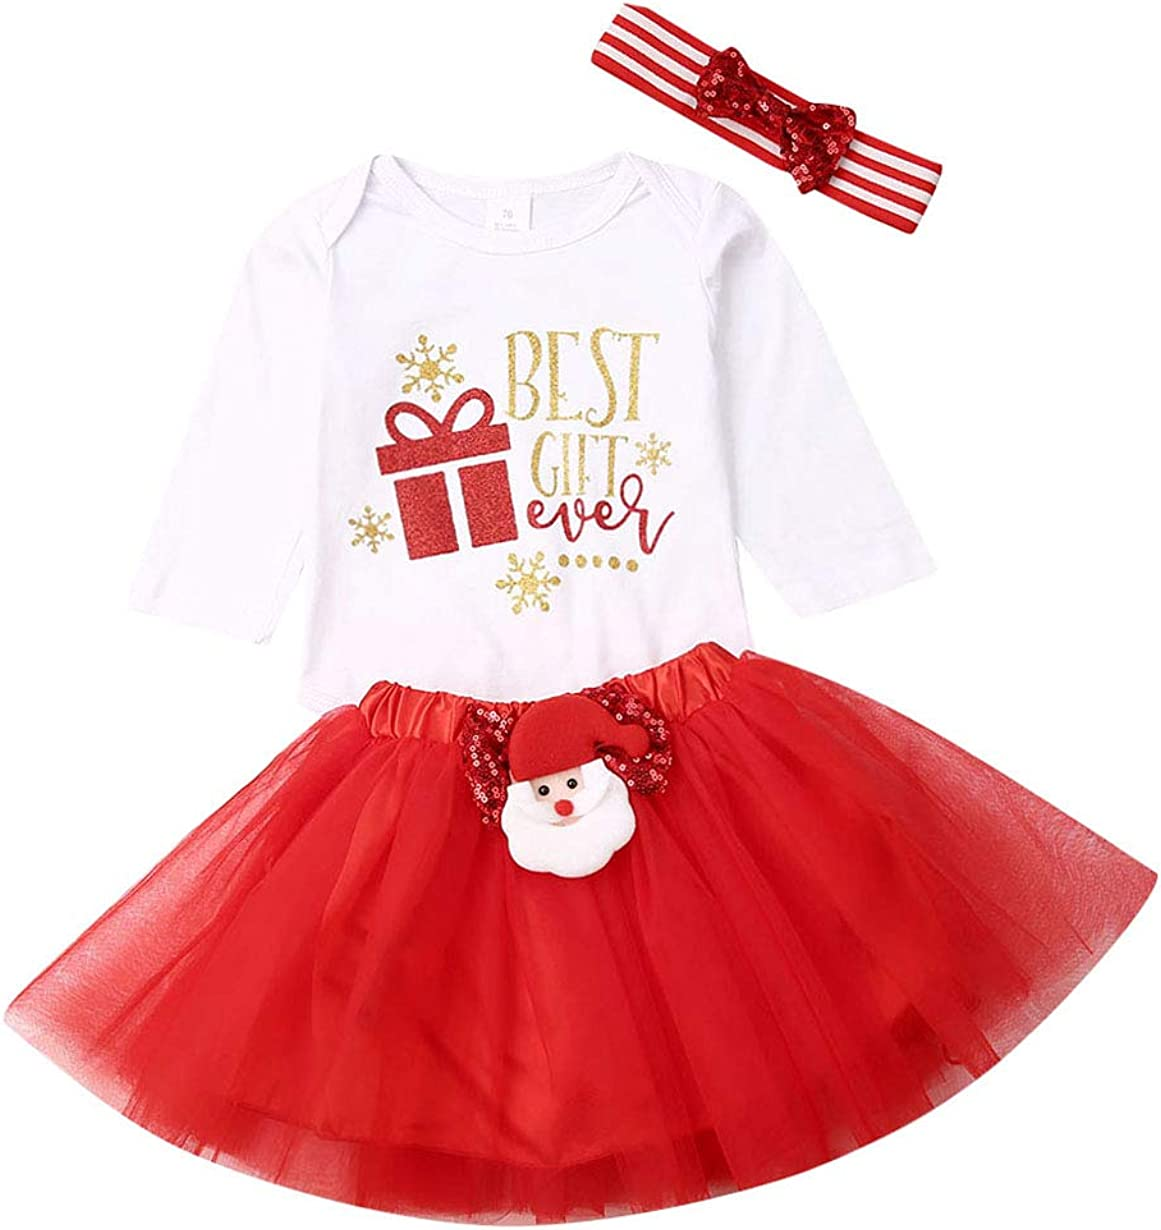 Tabpole Newborn Baby My 1st Christmas Romper Jumpsuit Outfit Headband Xmas Clothes